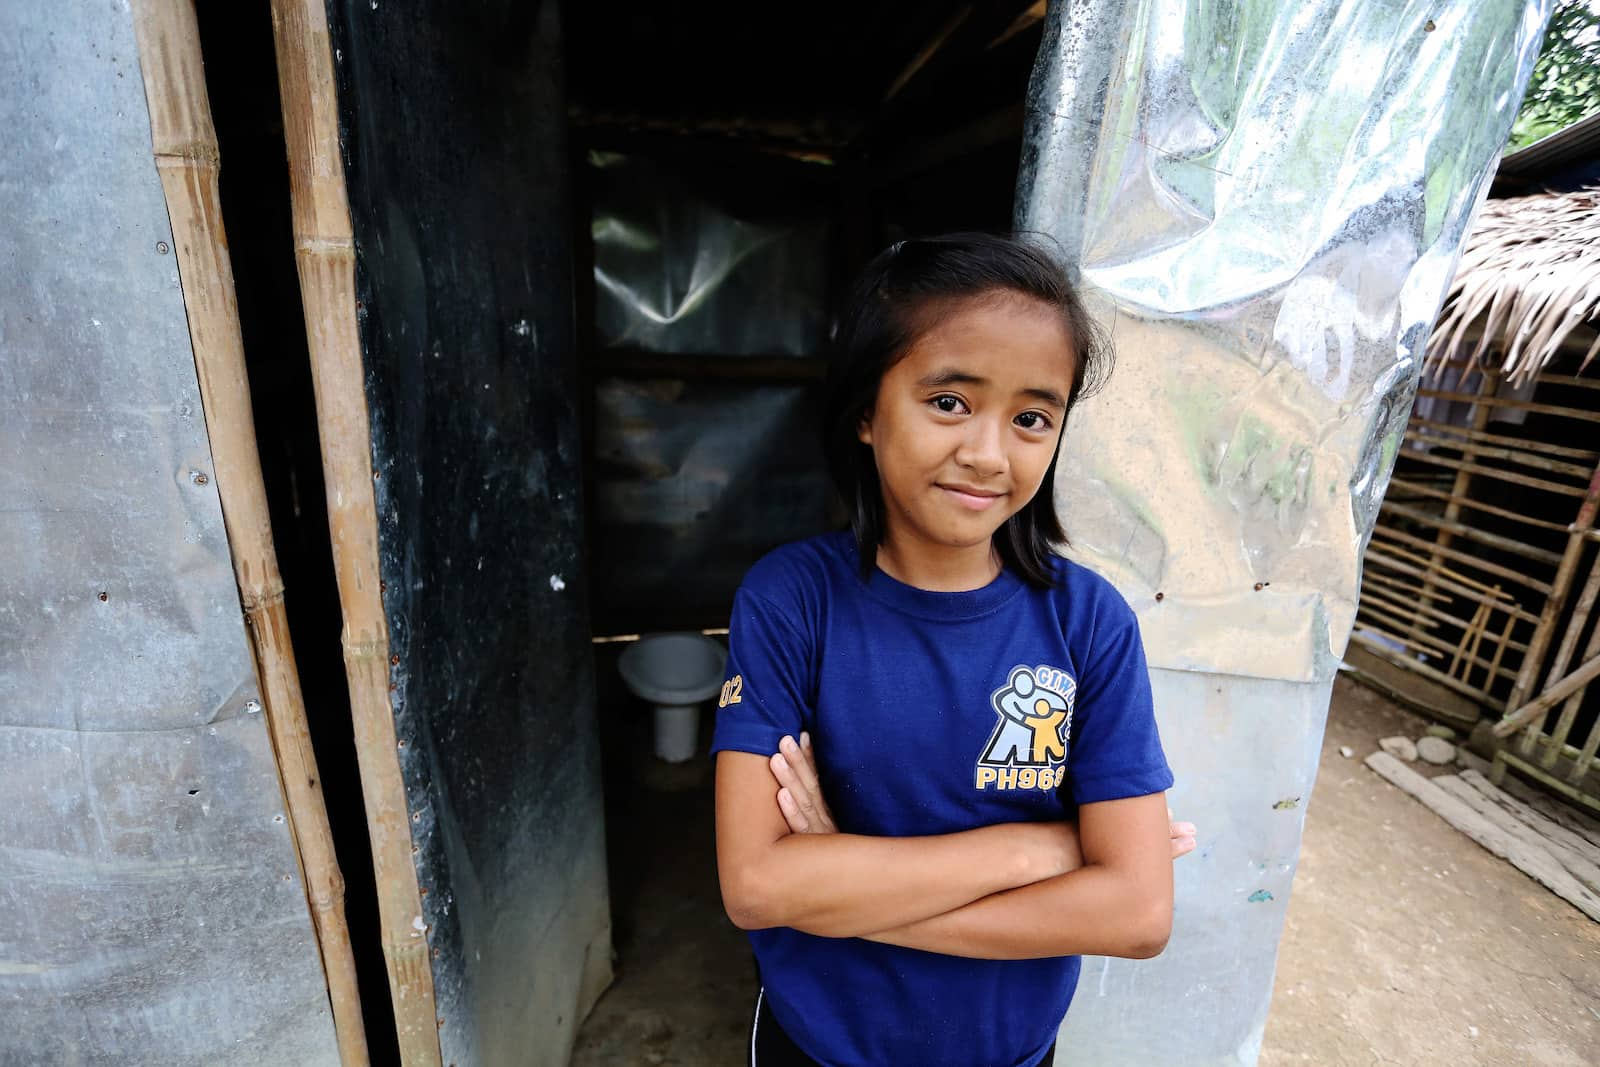 The History of the Toilet: A girl stands in front of a silver sheet building with a toilet inside.